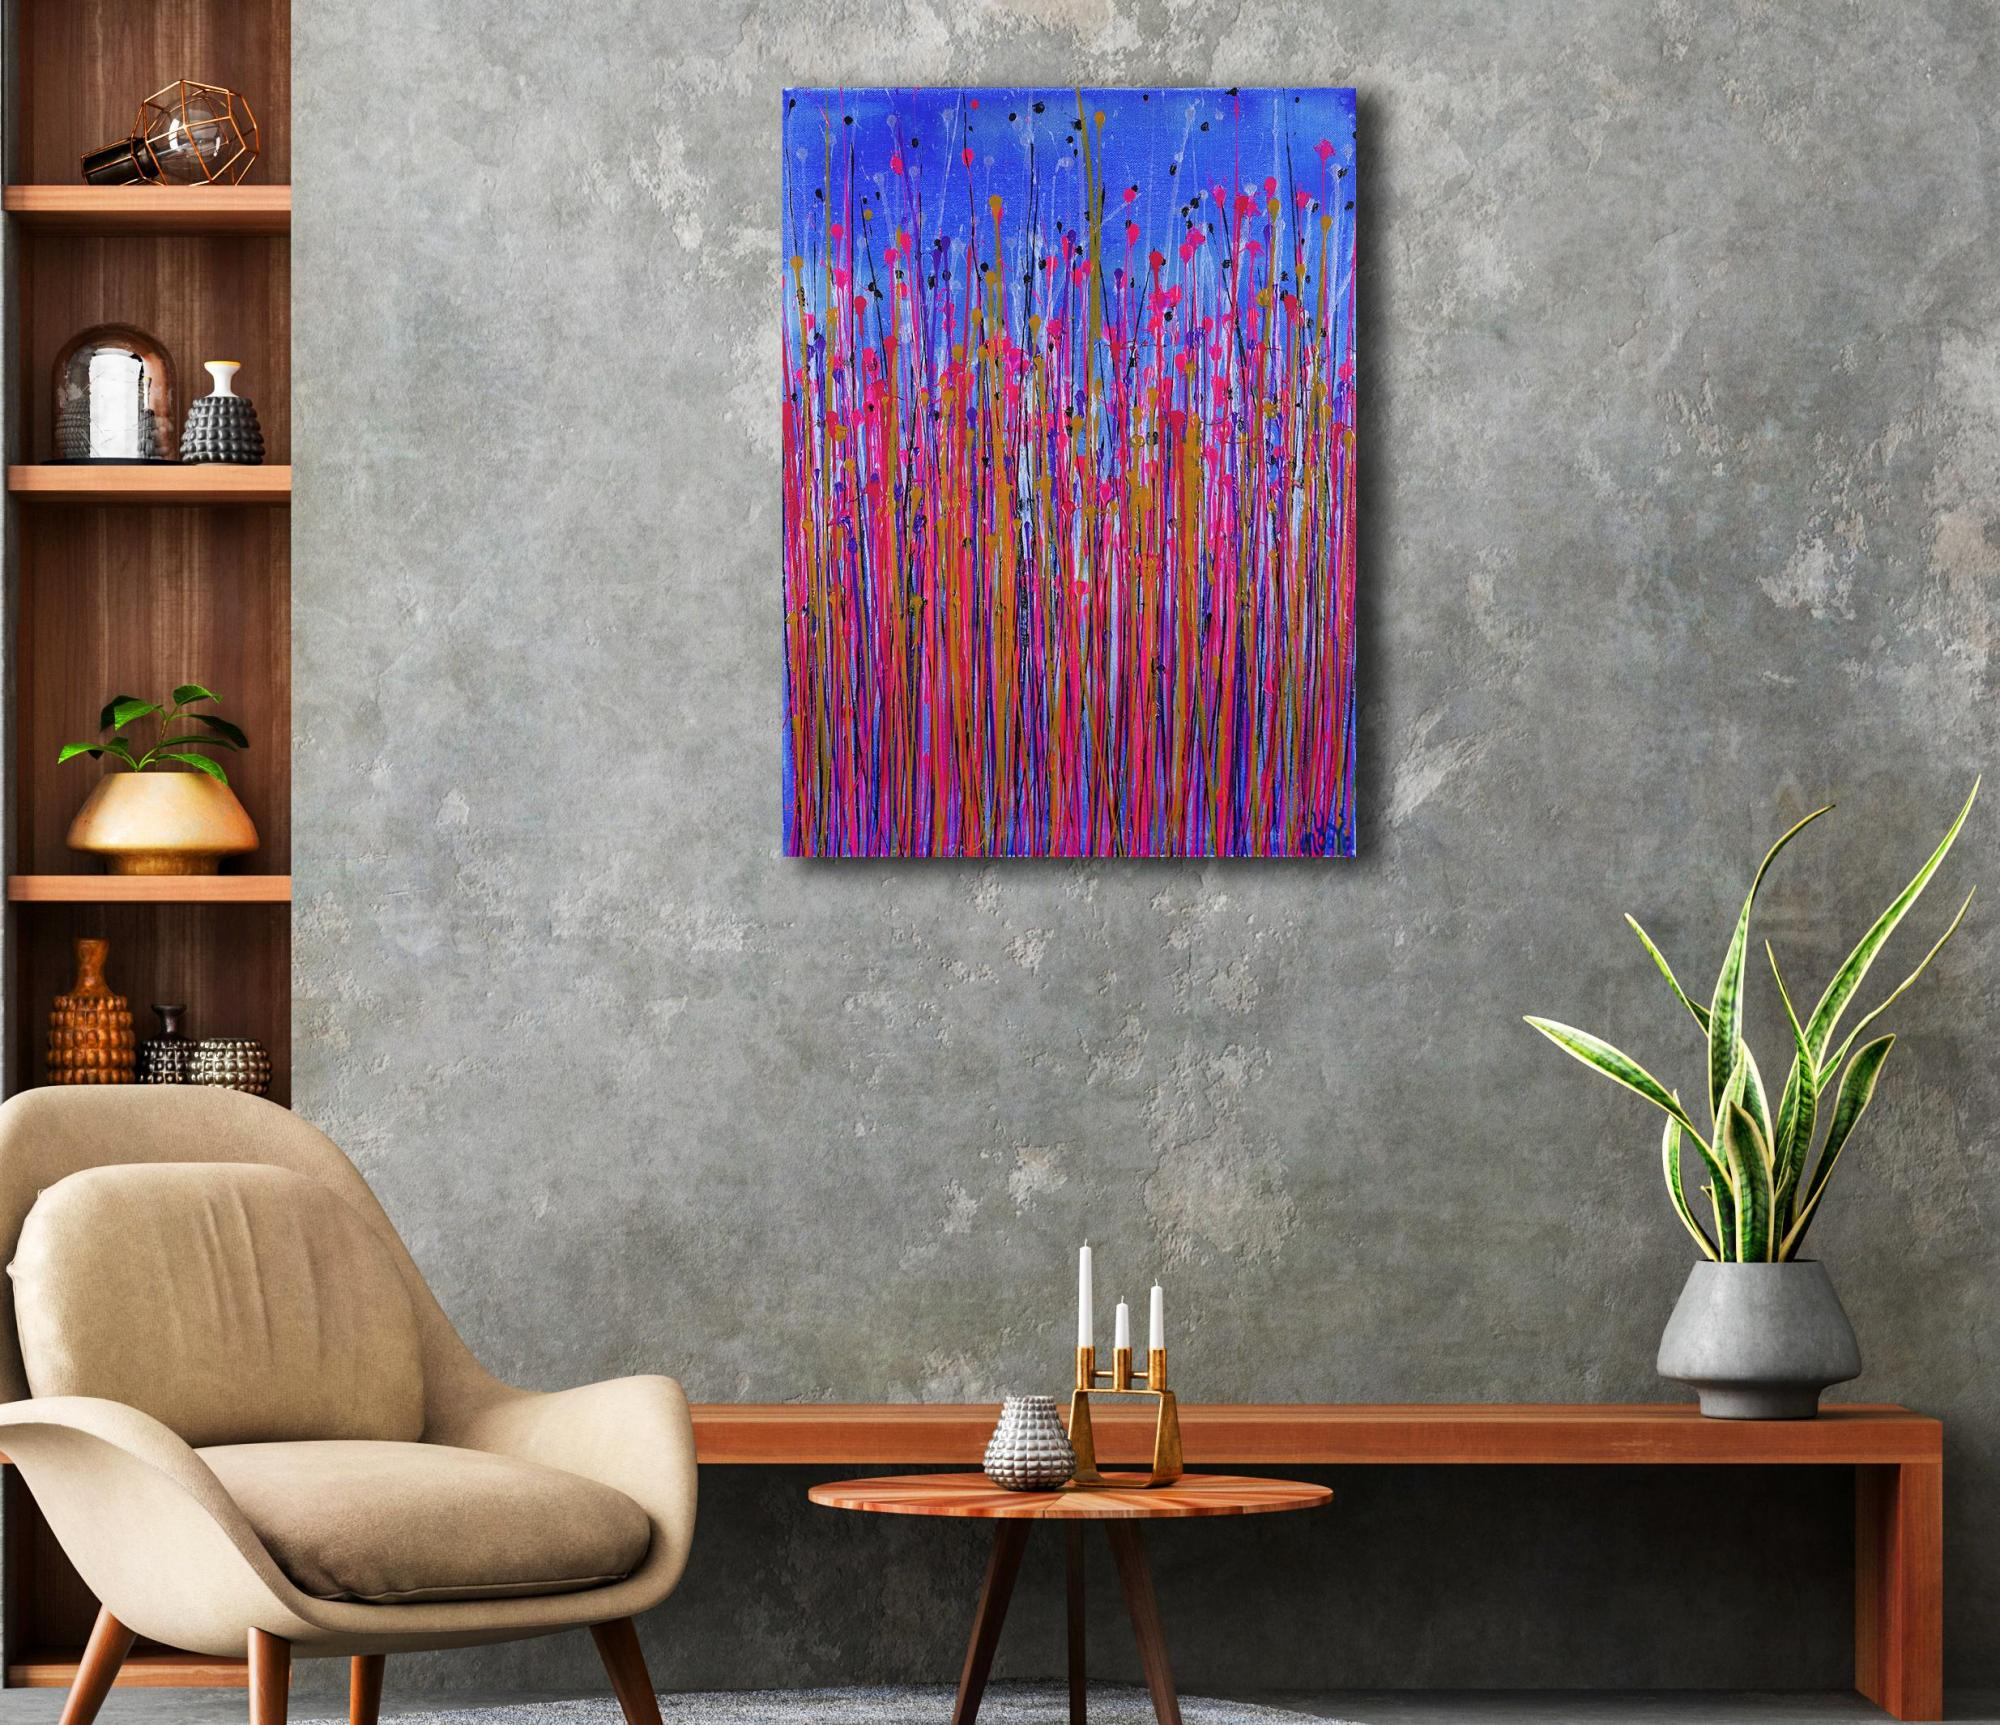 Room example / Pink Takeover (Over Silver Blue) 2 (2021) / SOLD